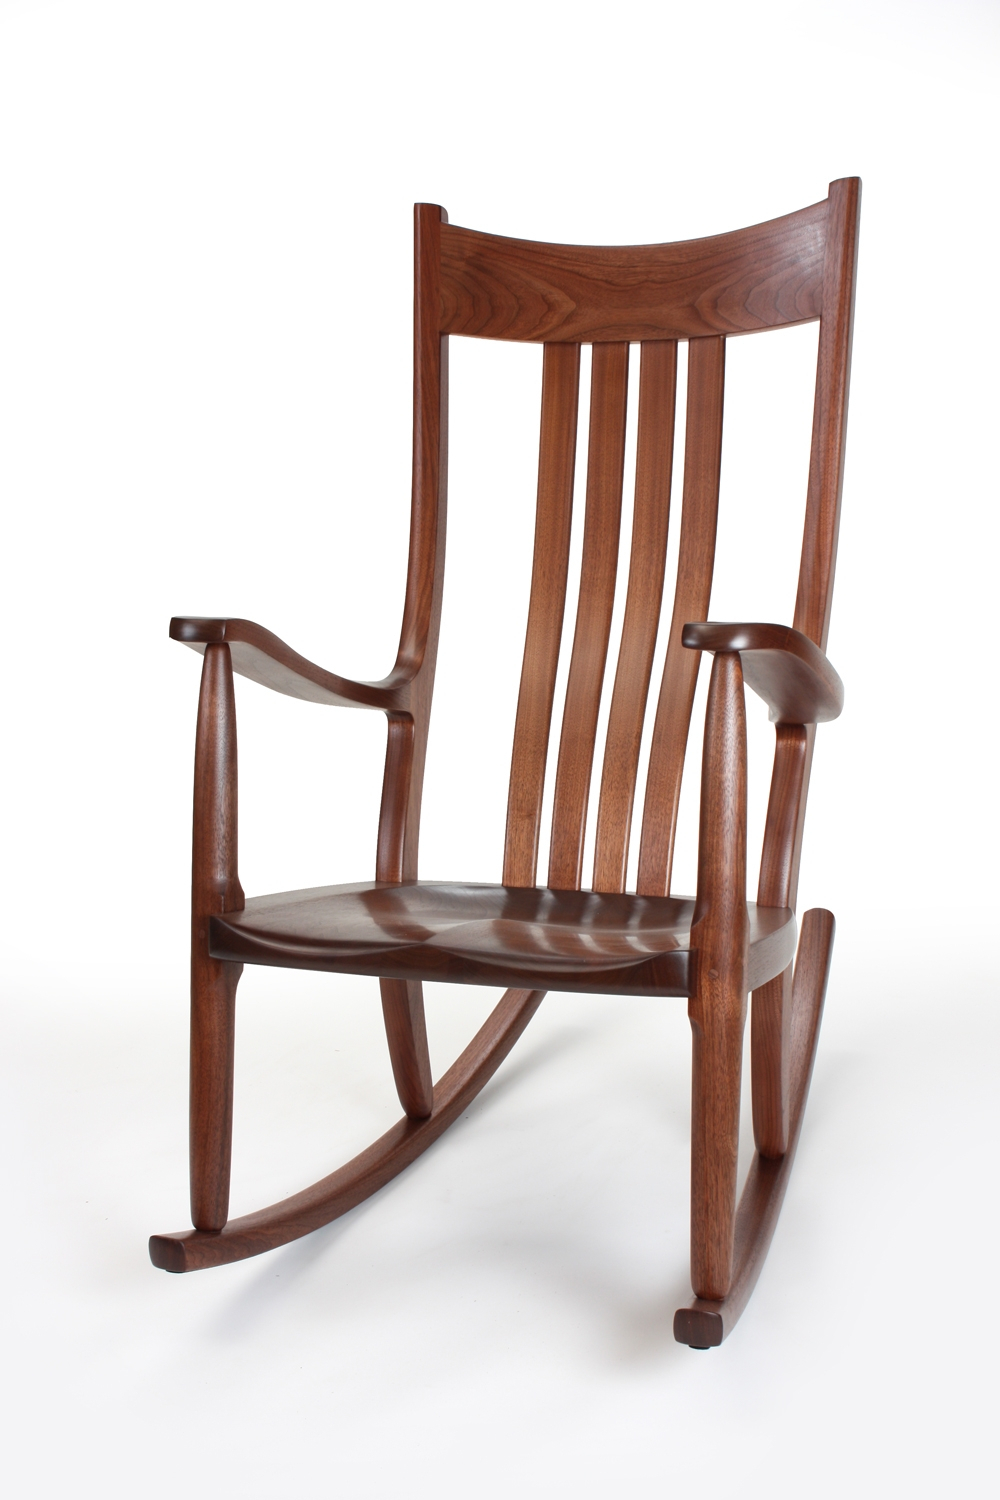 Inspiration about Walnut Rocking Chairs | Comfortable, Handmade, Heirloom With Dark Walnut Brown Wooden Rocking Chairs (#2 of 20)